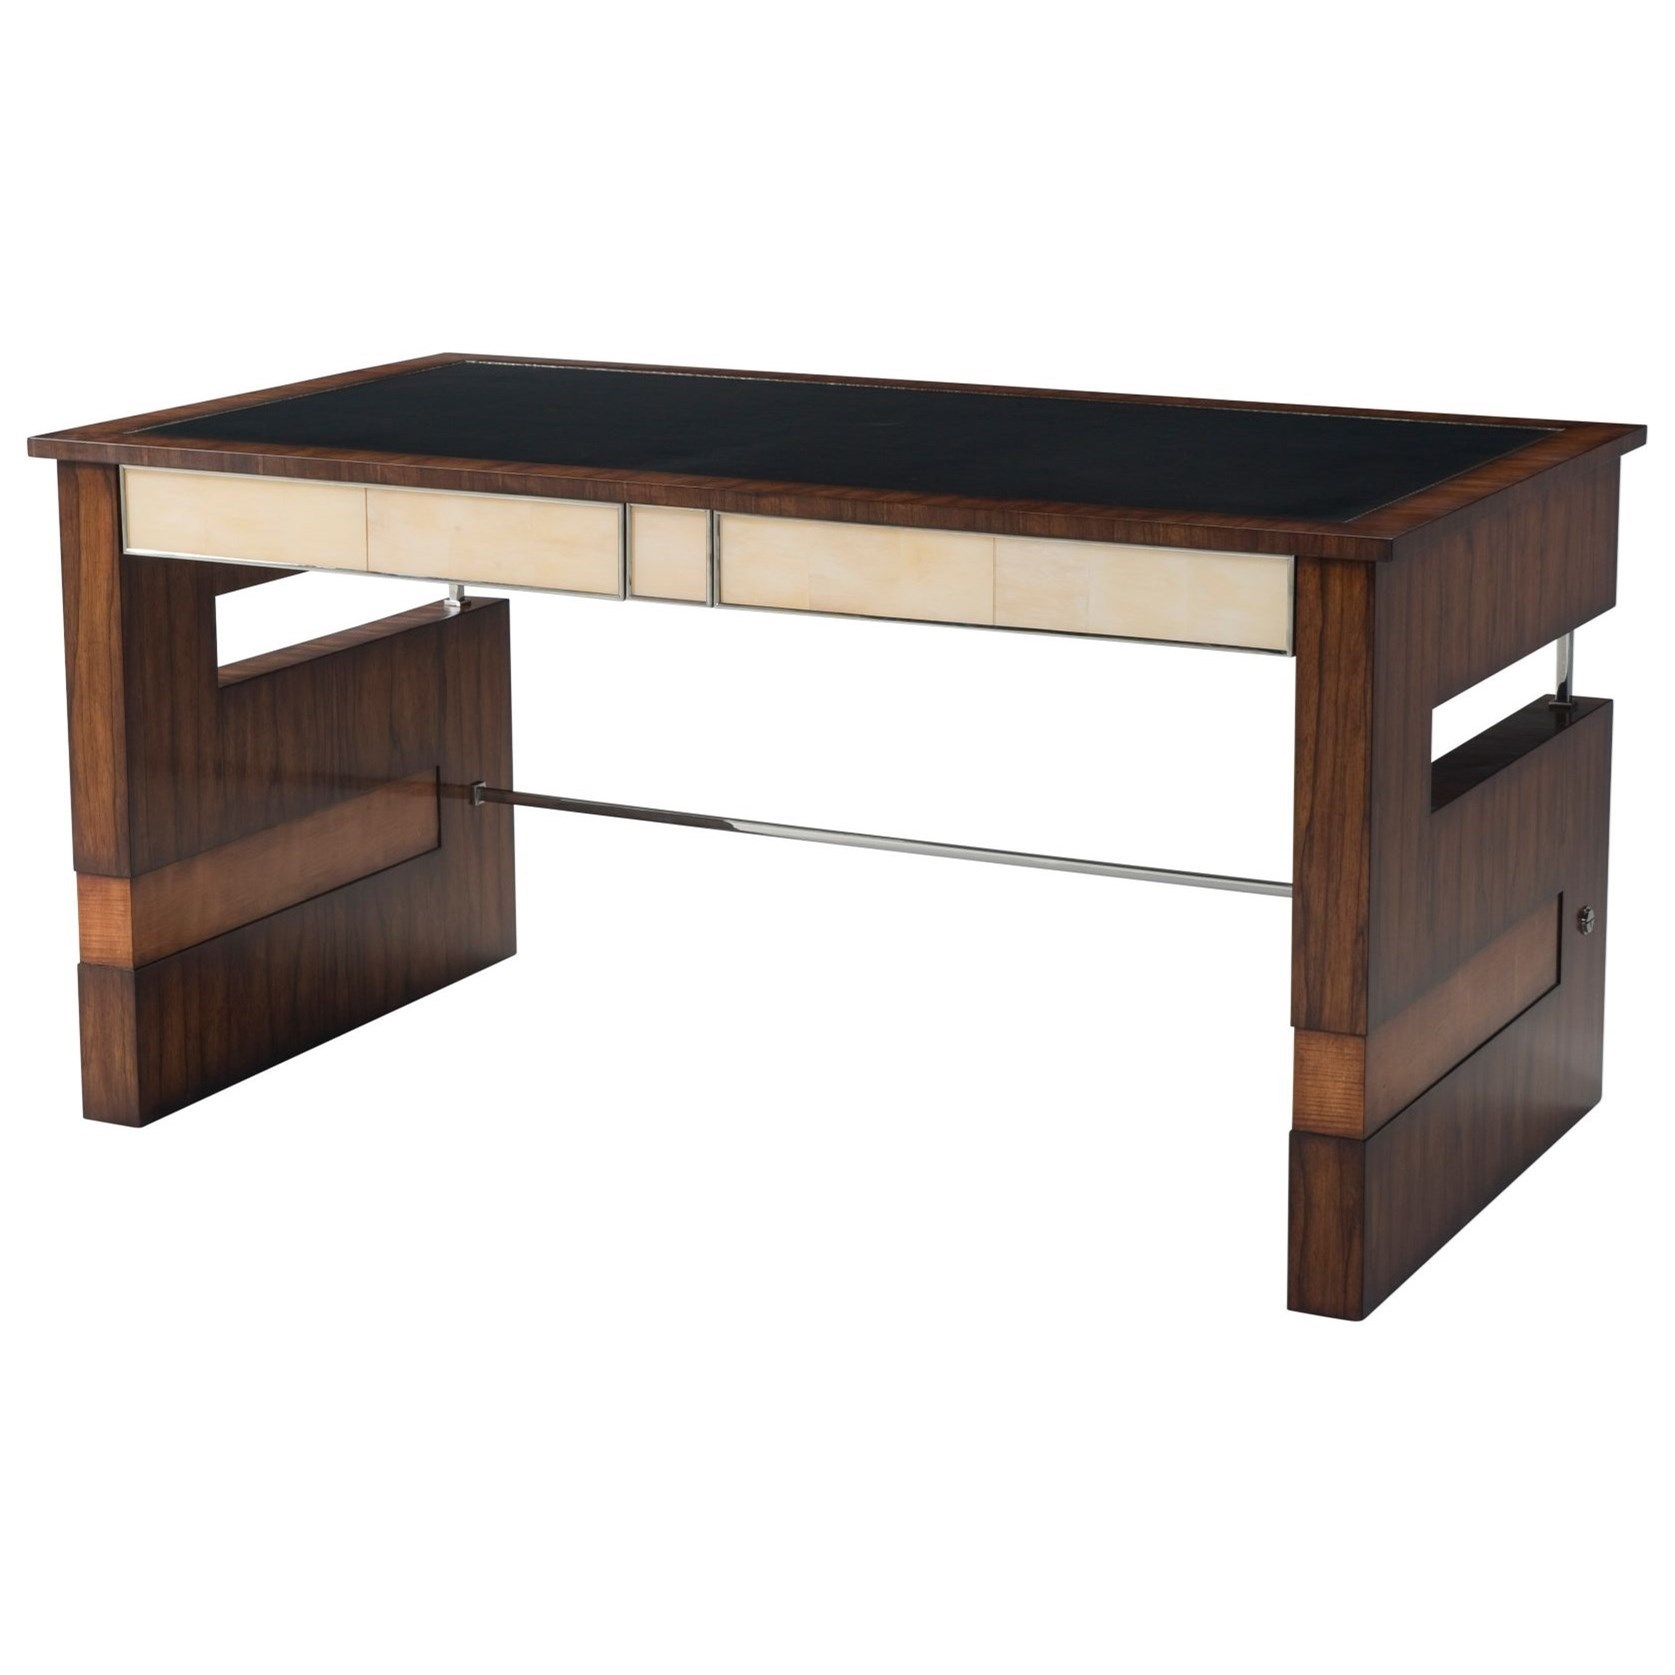 Theodore Alexander Vanucci Eclectics Striking Elements Writing Table - Item Number: 7105-189BL